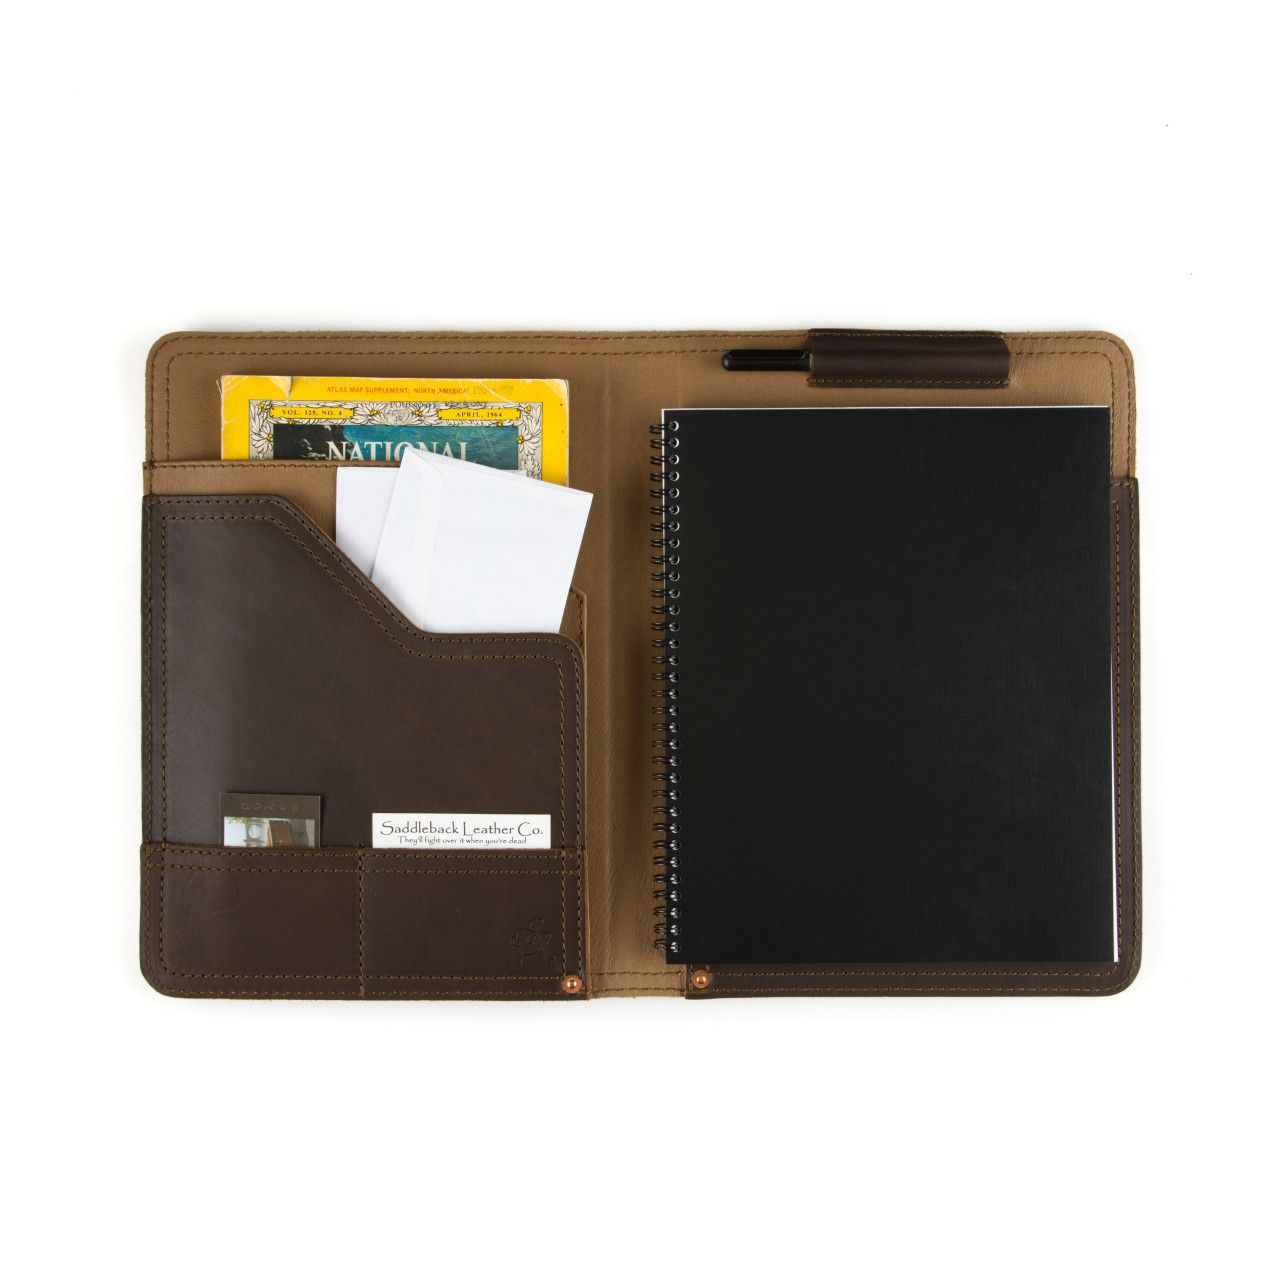 Notepad, business cards and map located in leather notepad cover medium in dark coffee brown leather